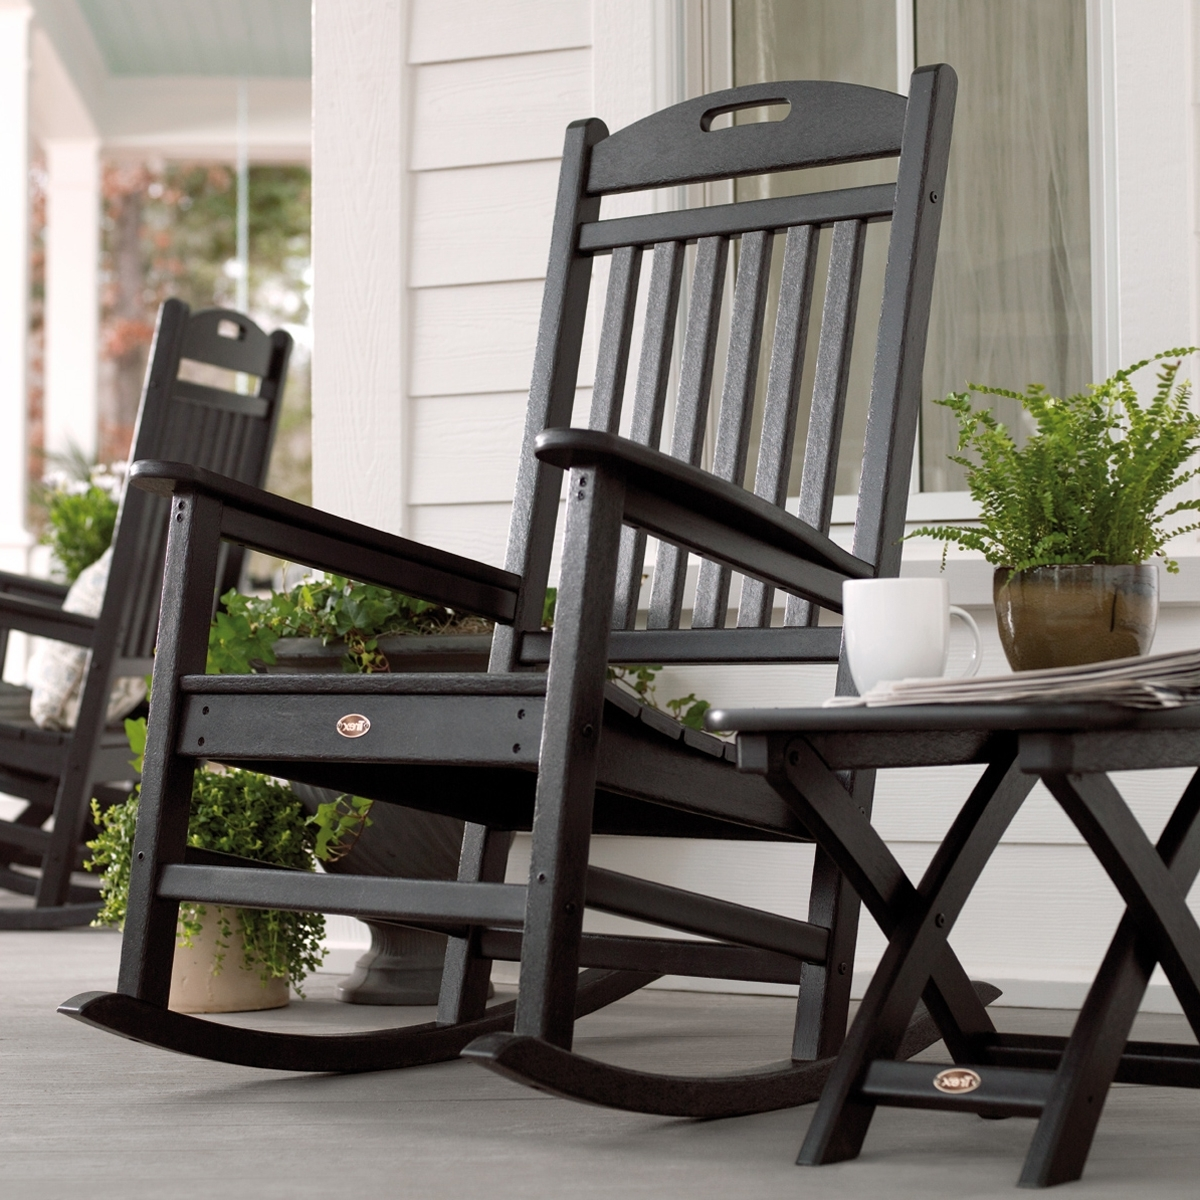 Rona Patio Rocking Chairs For Recent Trex Outdoor Furniture Txr100 Yacht Club Outdoor Rocking Chair (View 9 of 15)